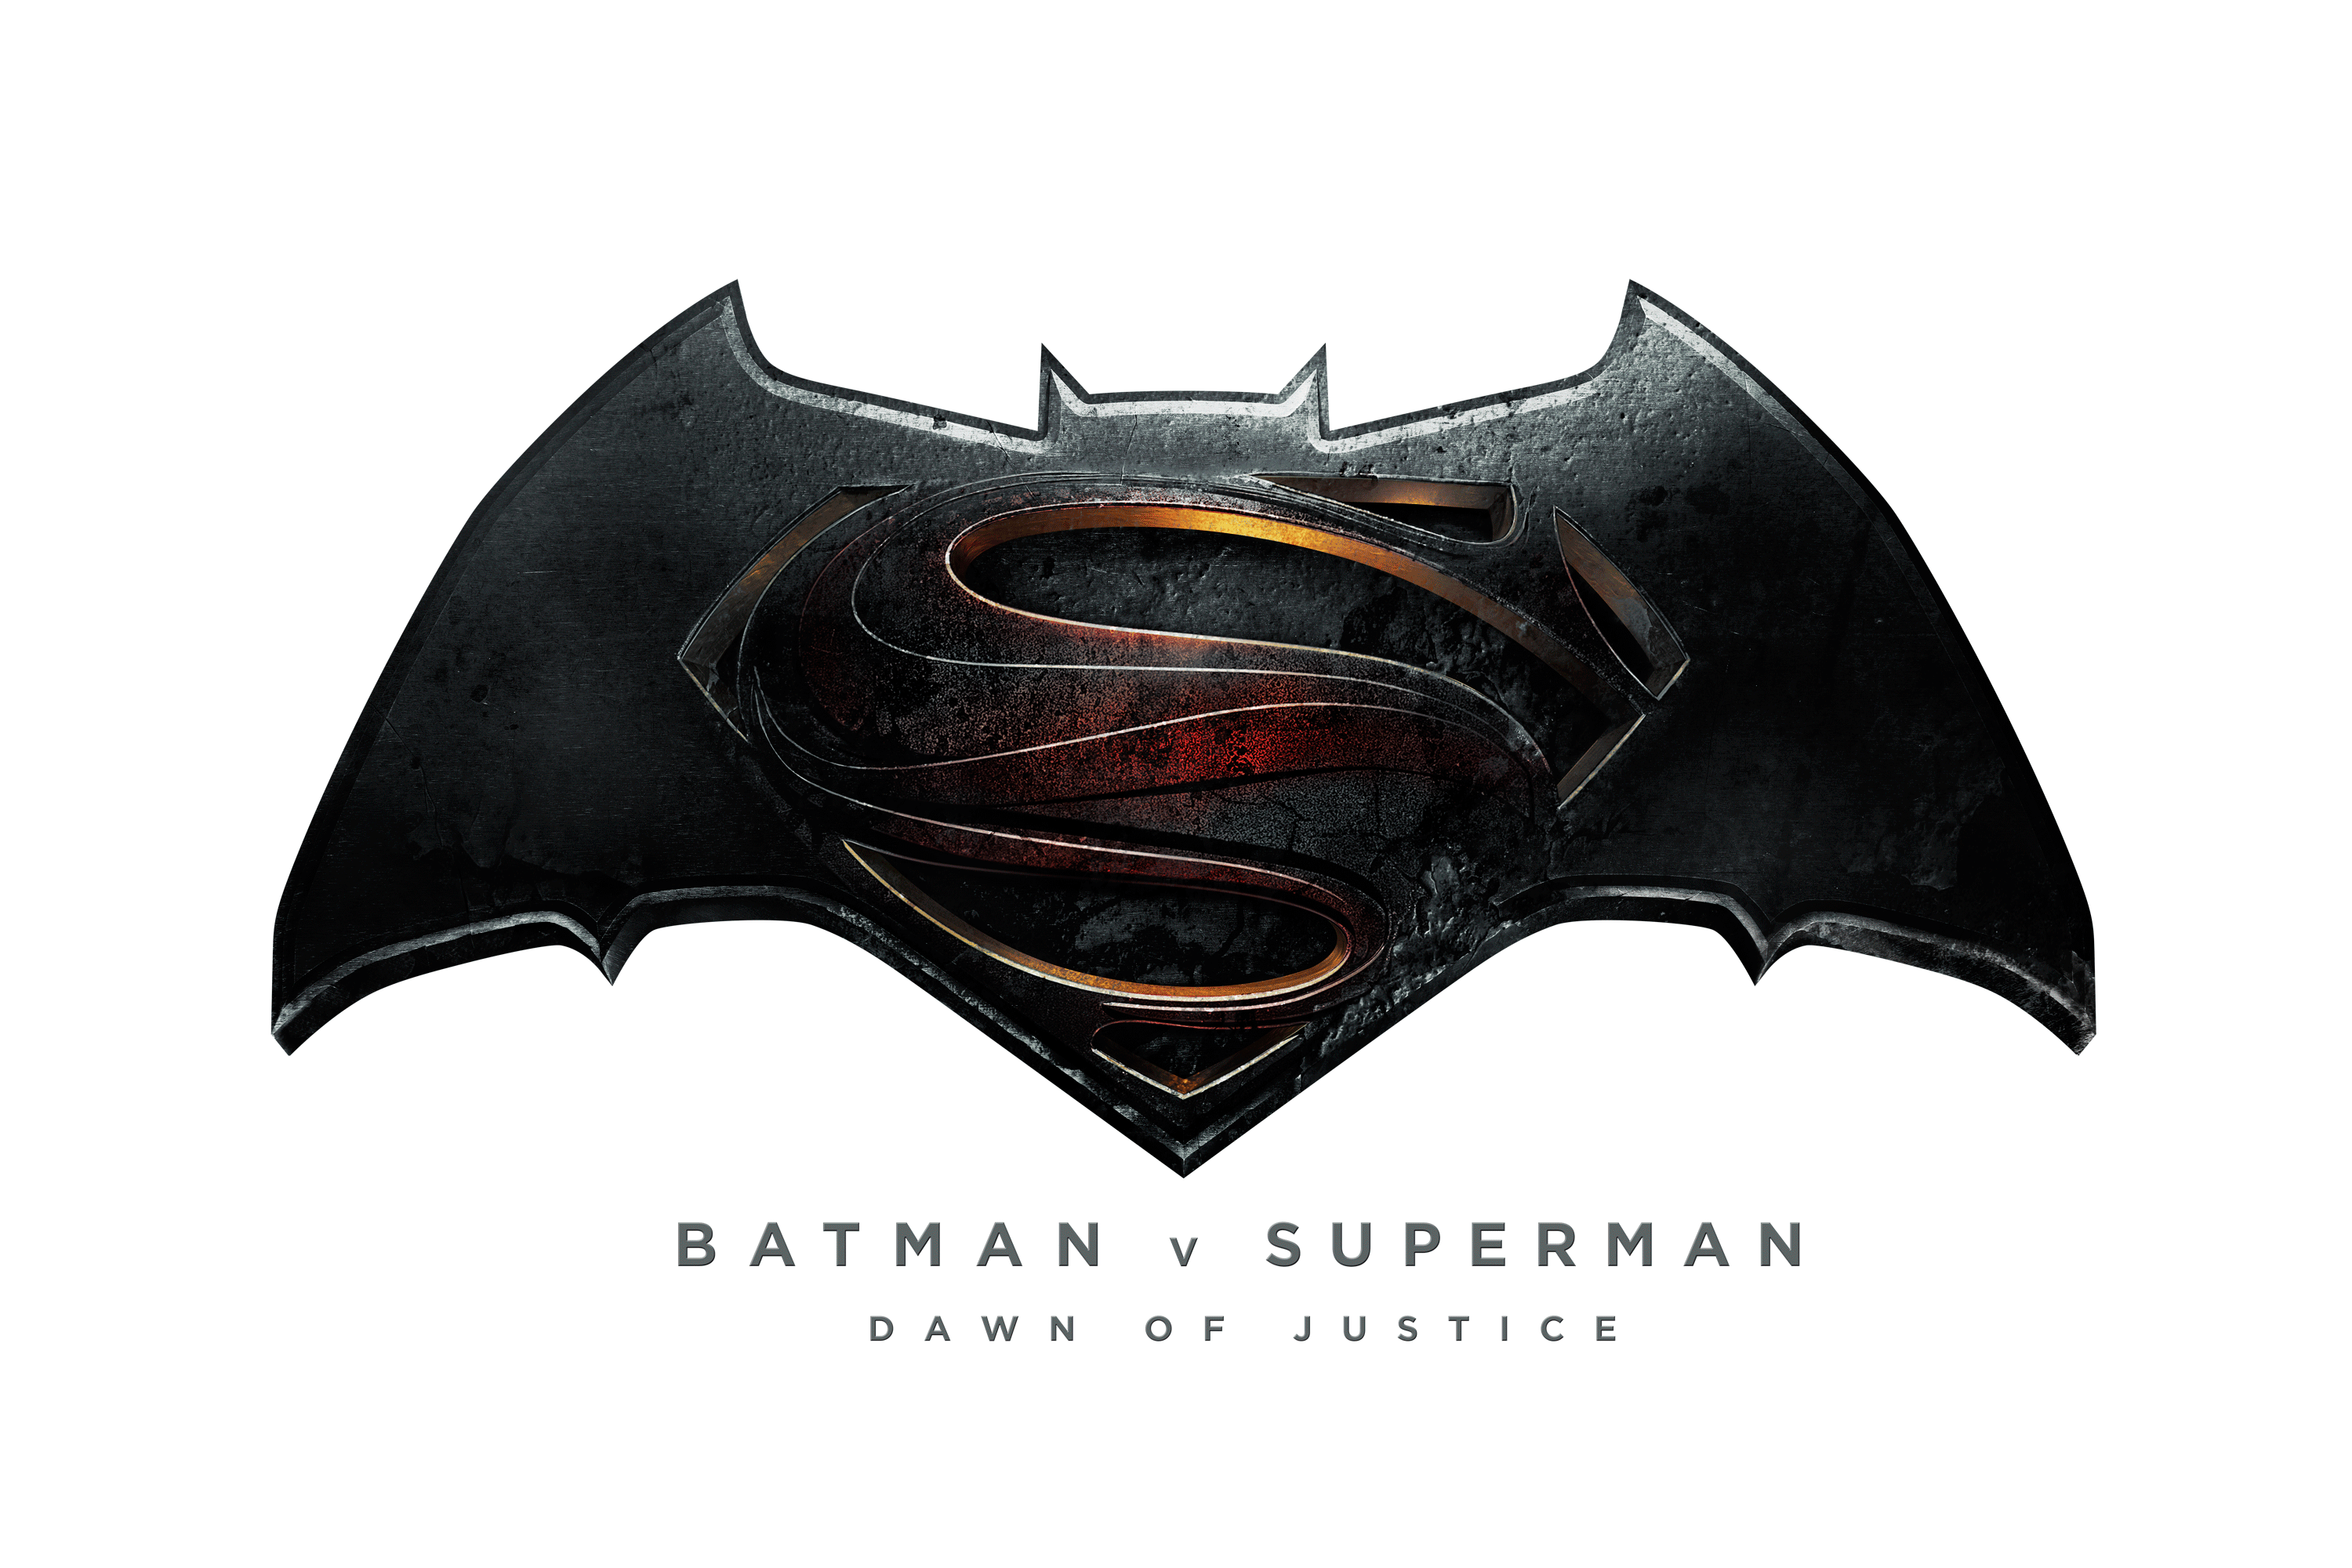 Batman Vs Superman Image PNG Image